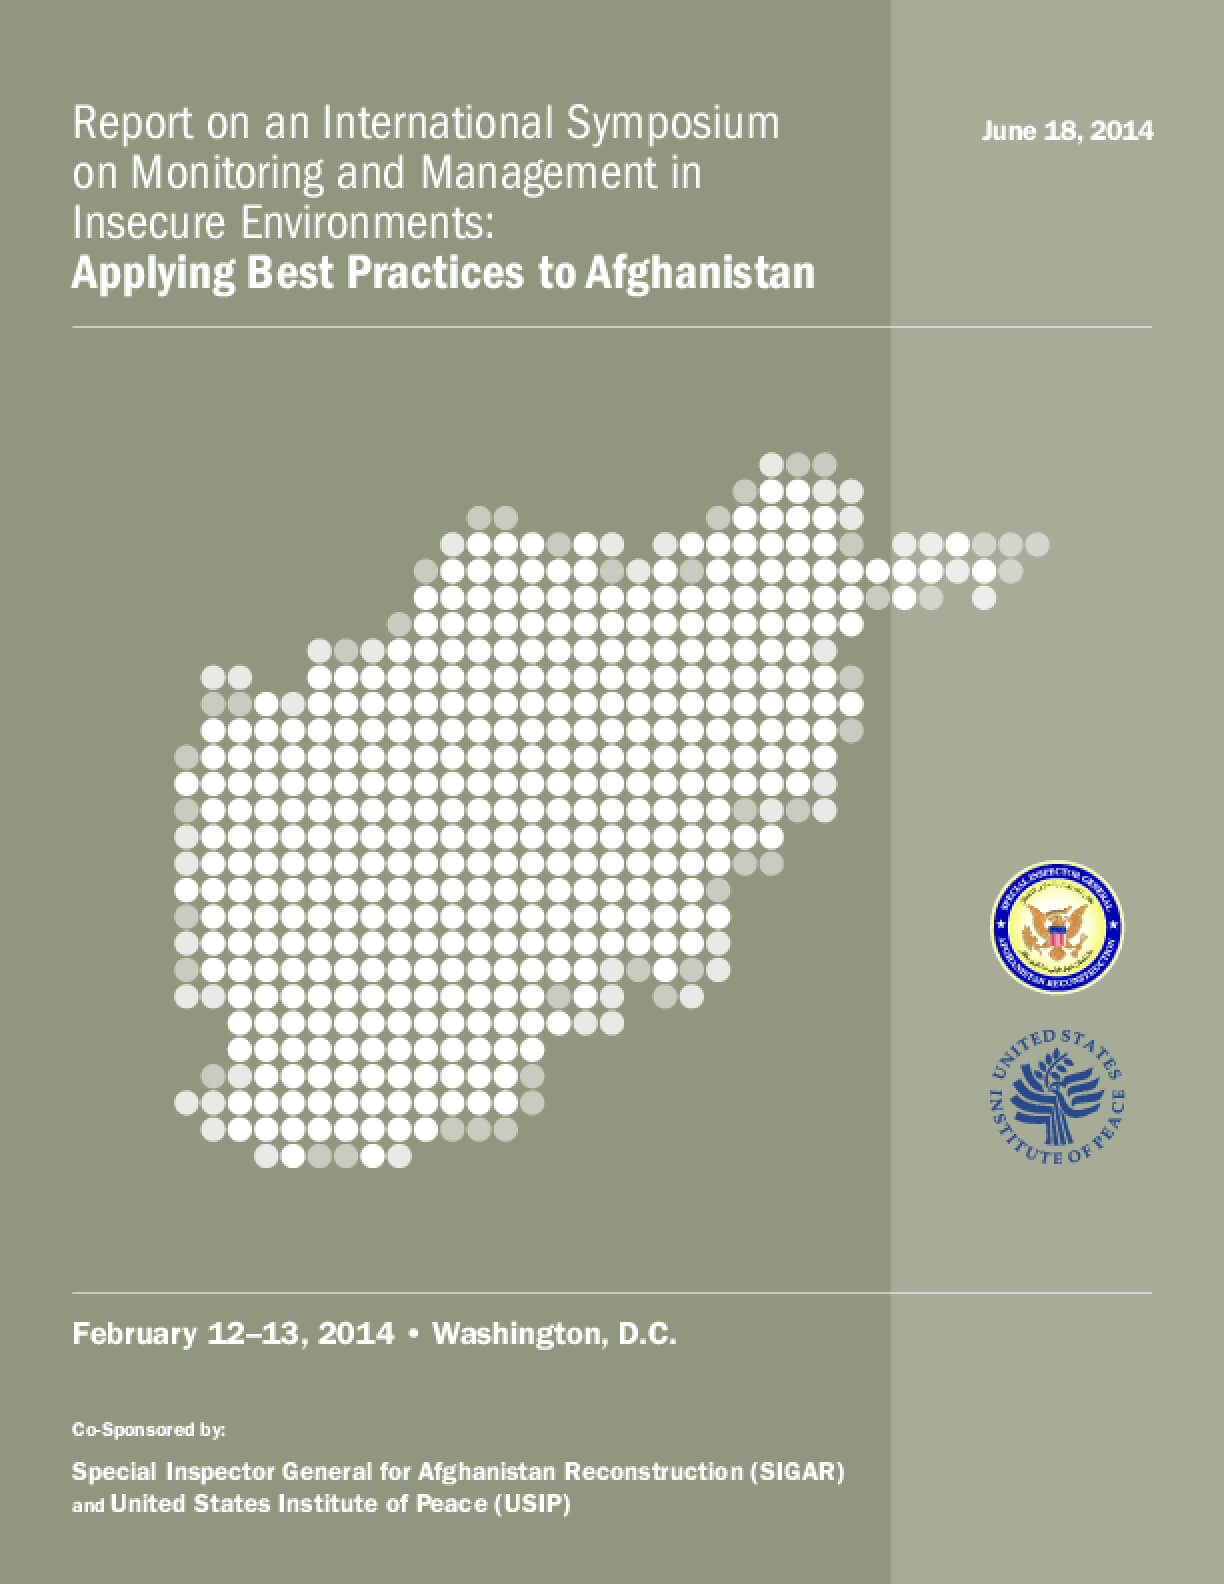 Applying Best Practices to Afghanistan: Report on an International Symposium on Monitoring and Management in Insecure Environments